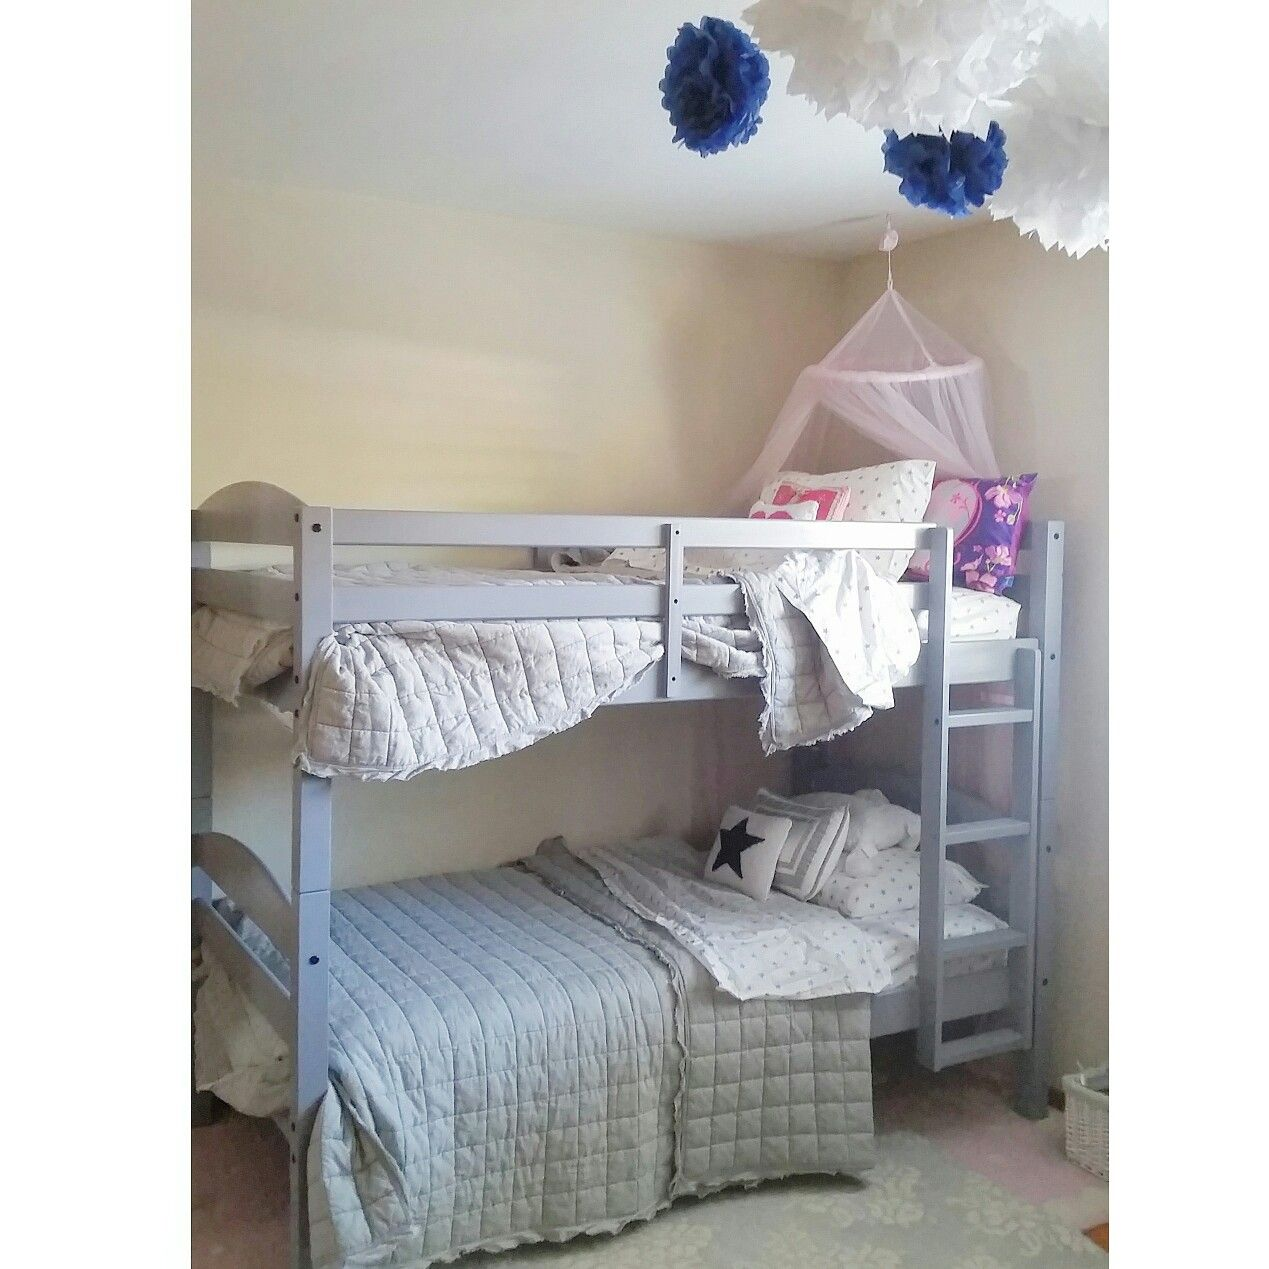 Brother sister shared bedroom Bunk beds His and hers